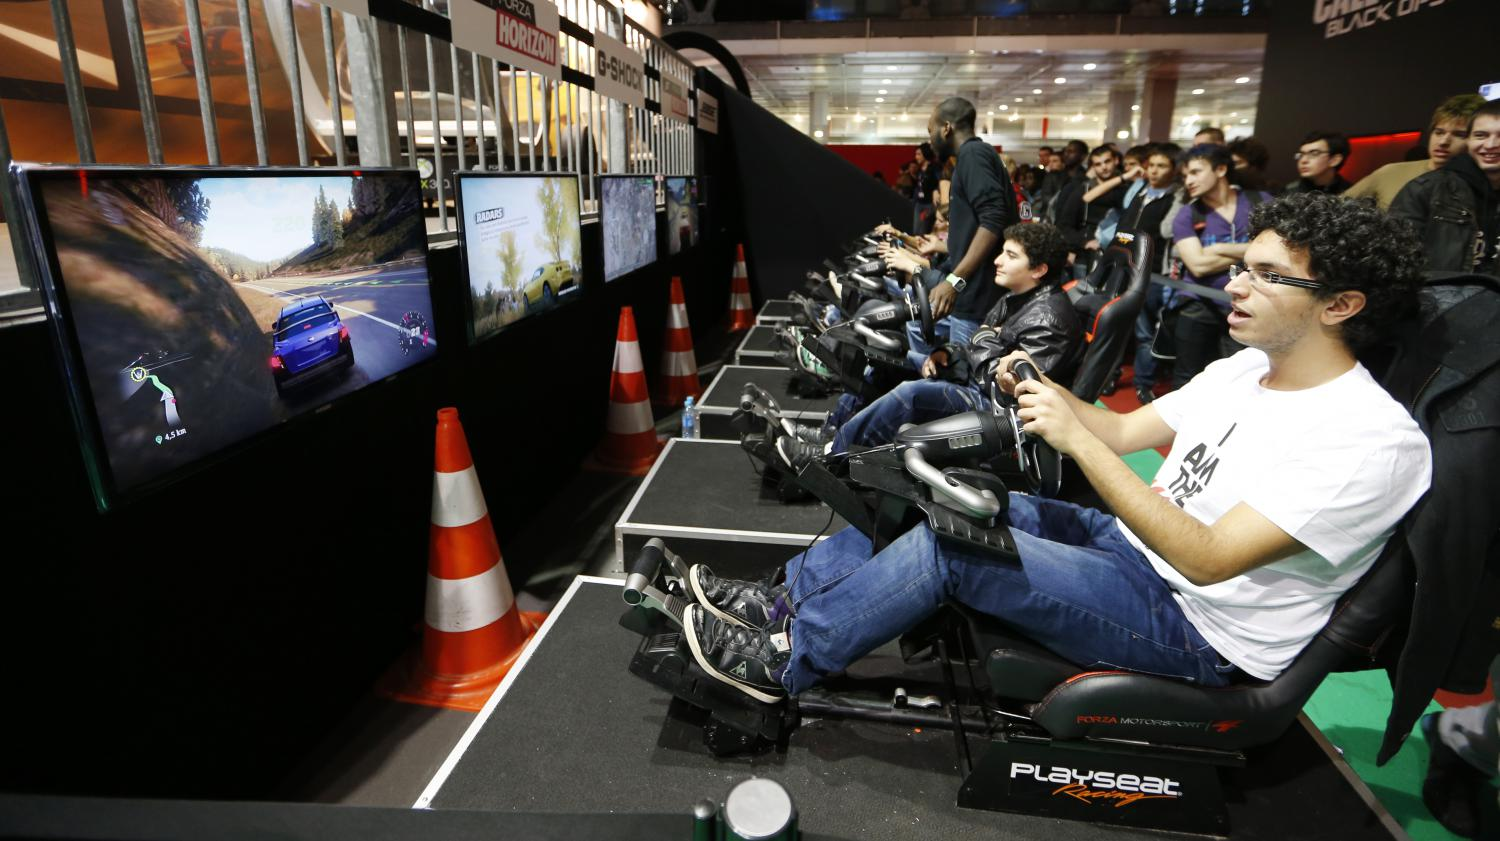 Video a la d couverte du salon du jeu vid o paris games week for Salon a paris ce weekend